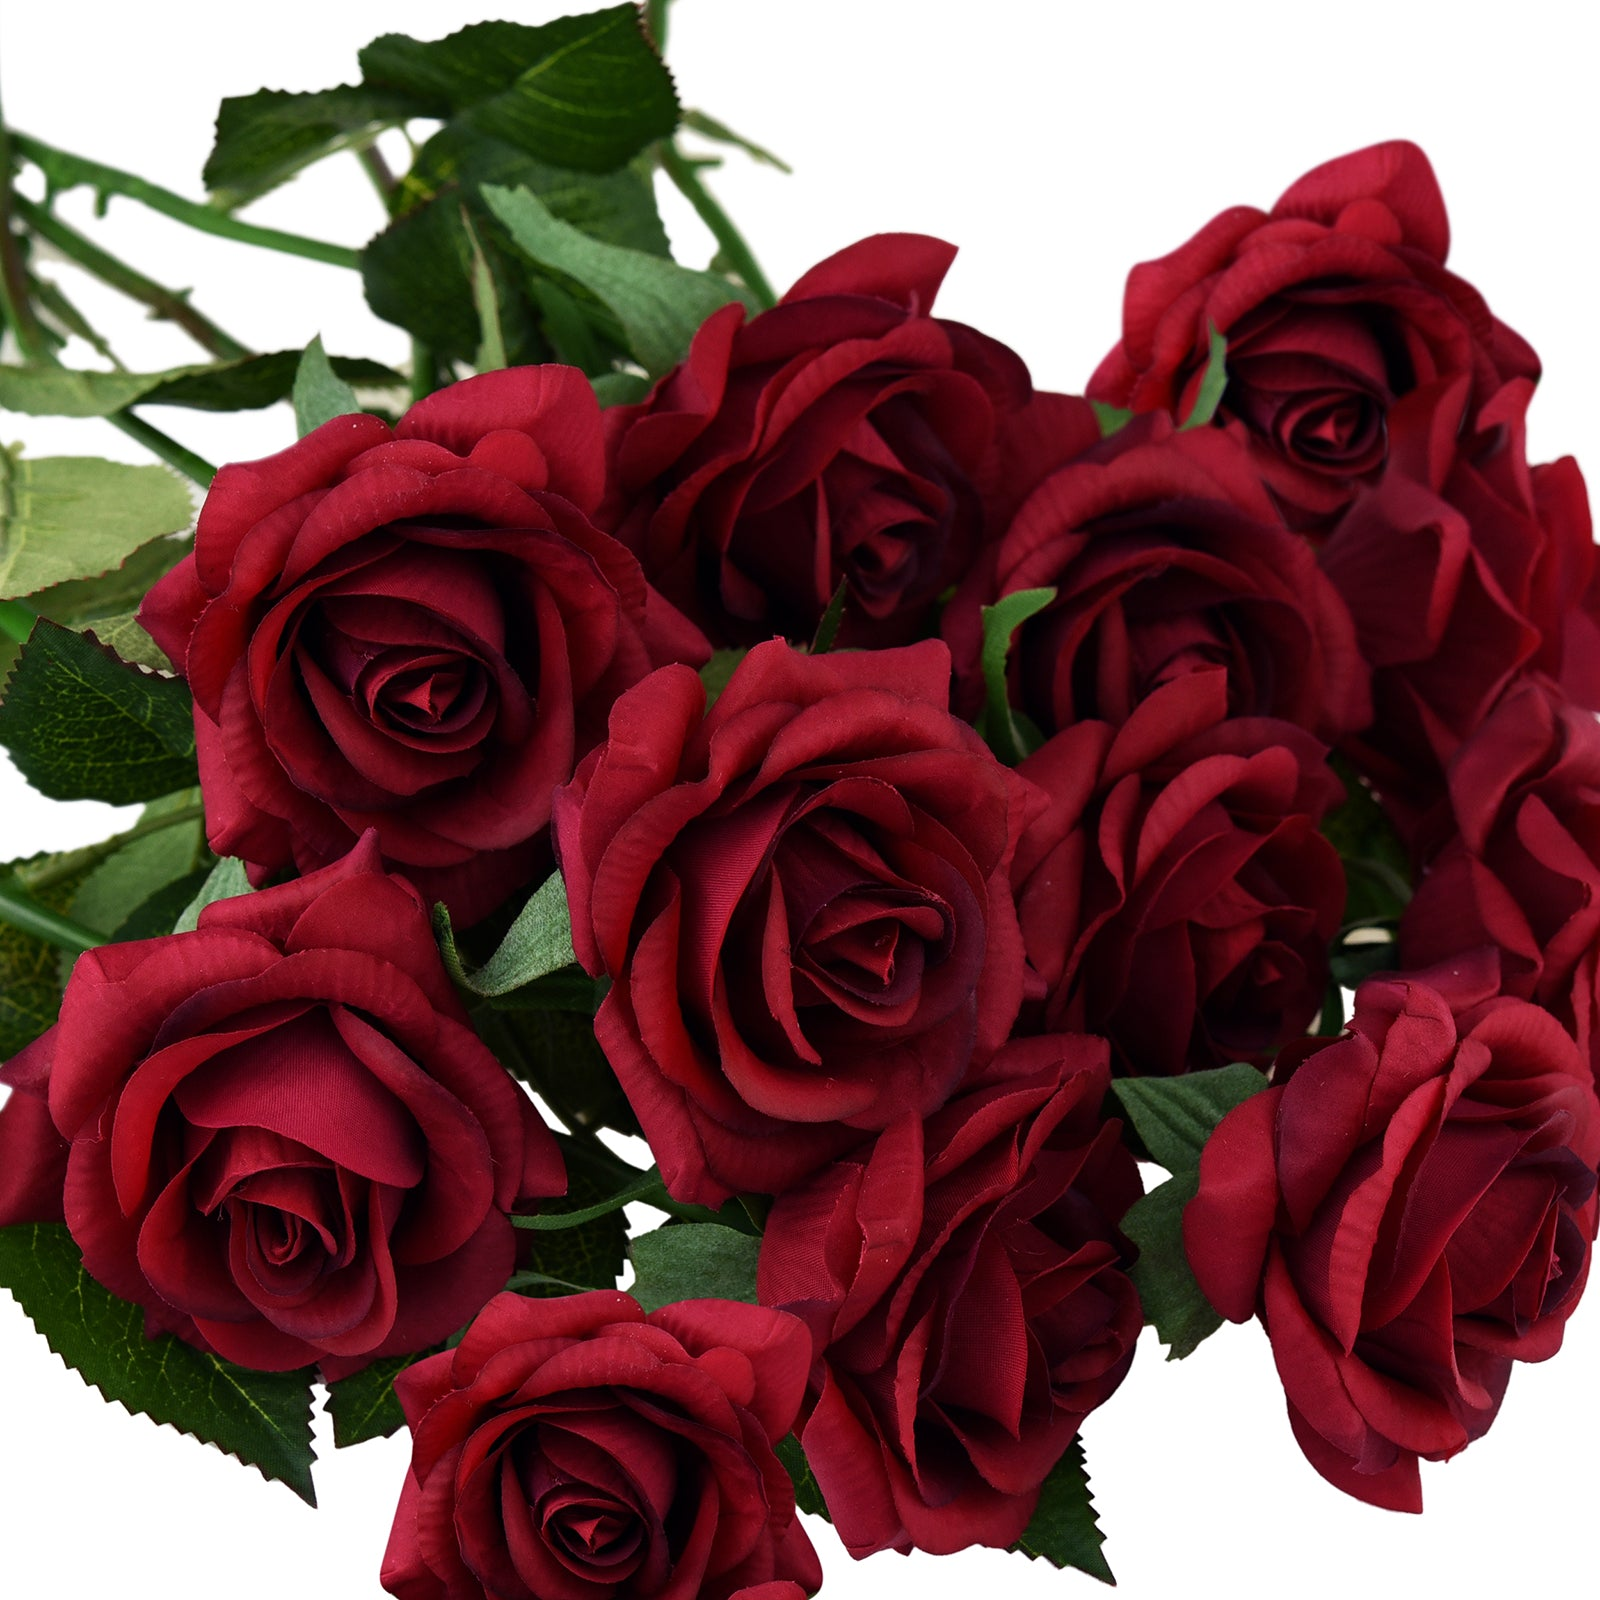 Artificial Flowers Real Touch Silk Roses 10 Stems (Dark Scarlet Red)